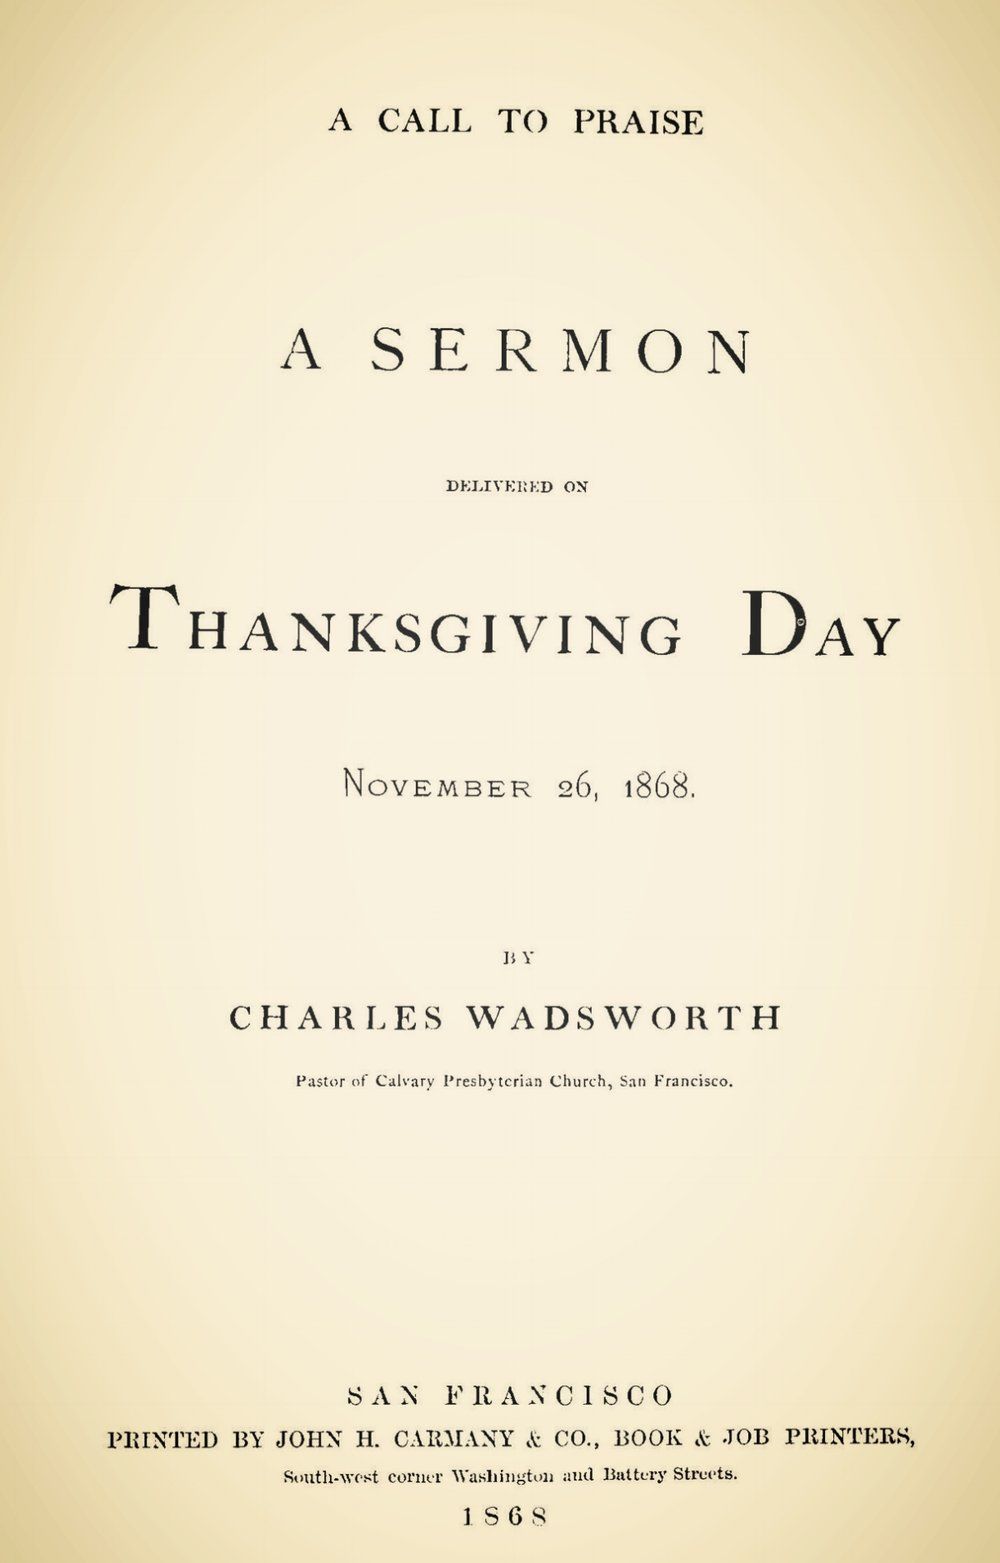 Wadsworth, Charles, A Call to Praise Title Page.jpg